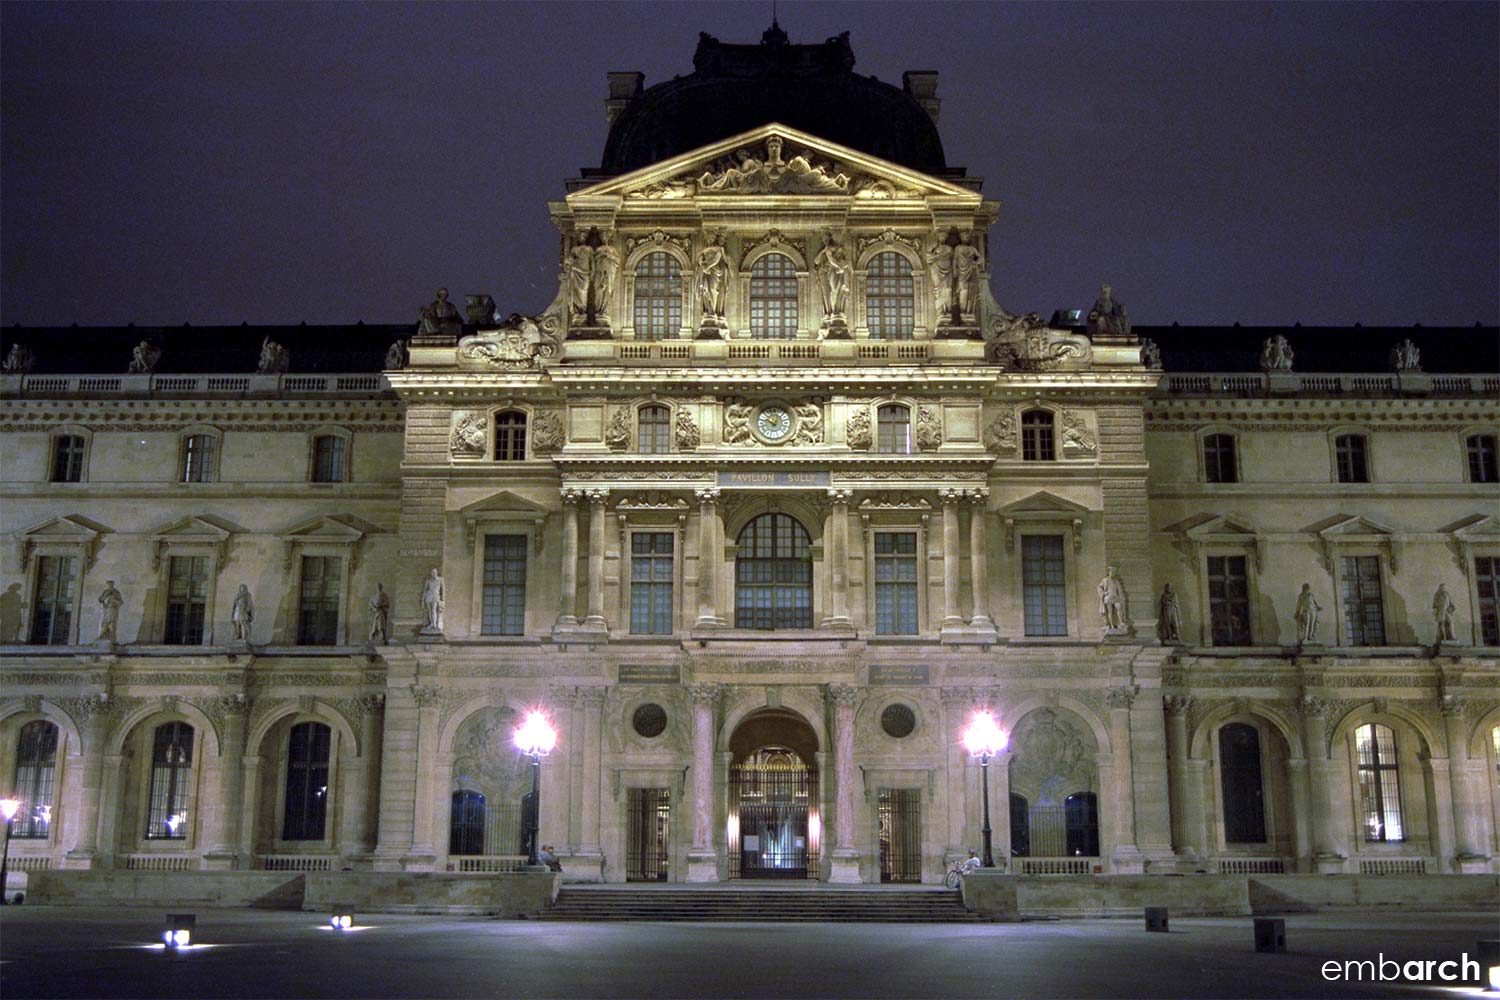 Louvre - exterior courtyard detail at night